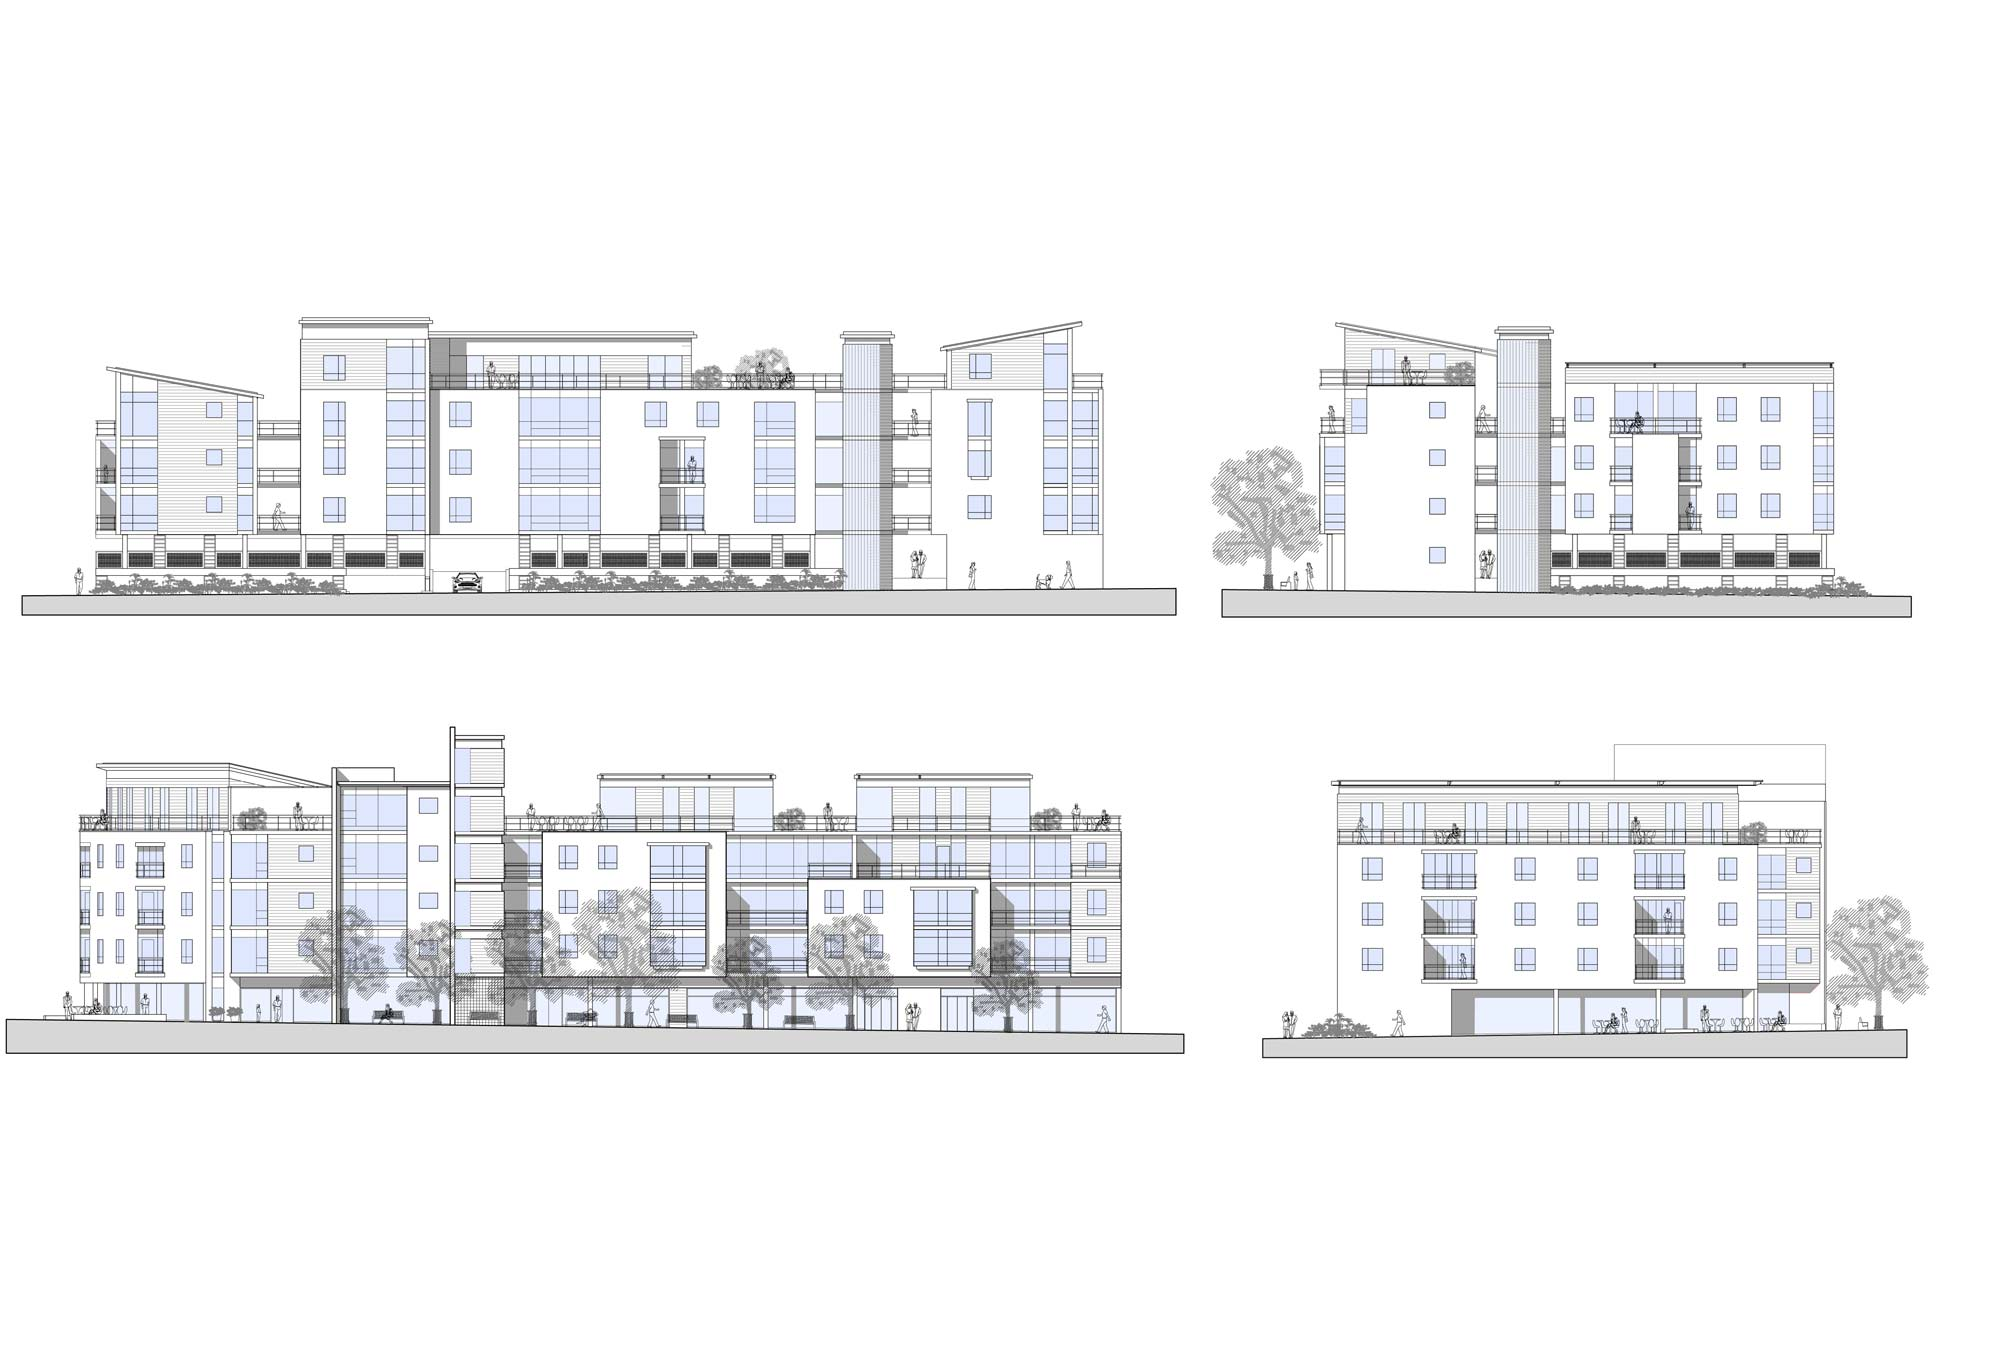 Newcastle under lyme brunswick street major commercial residential development elevations